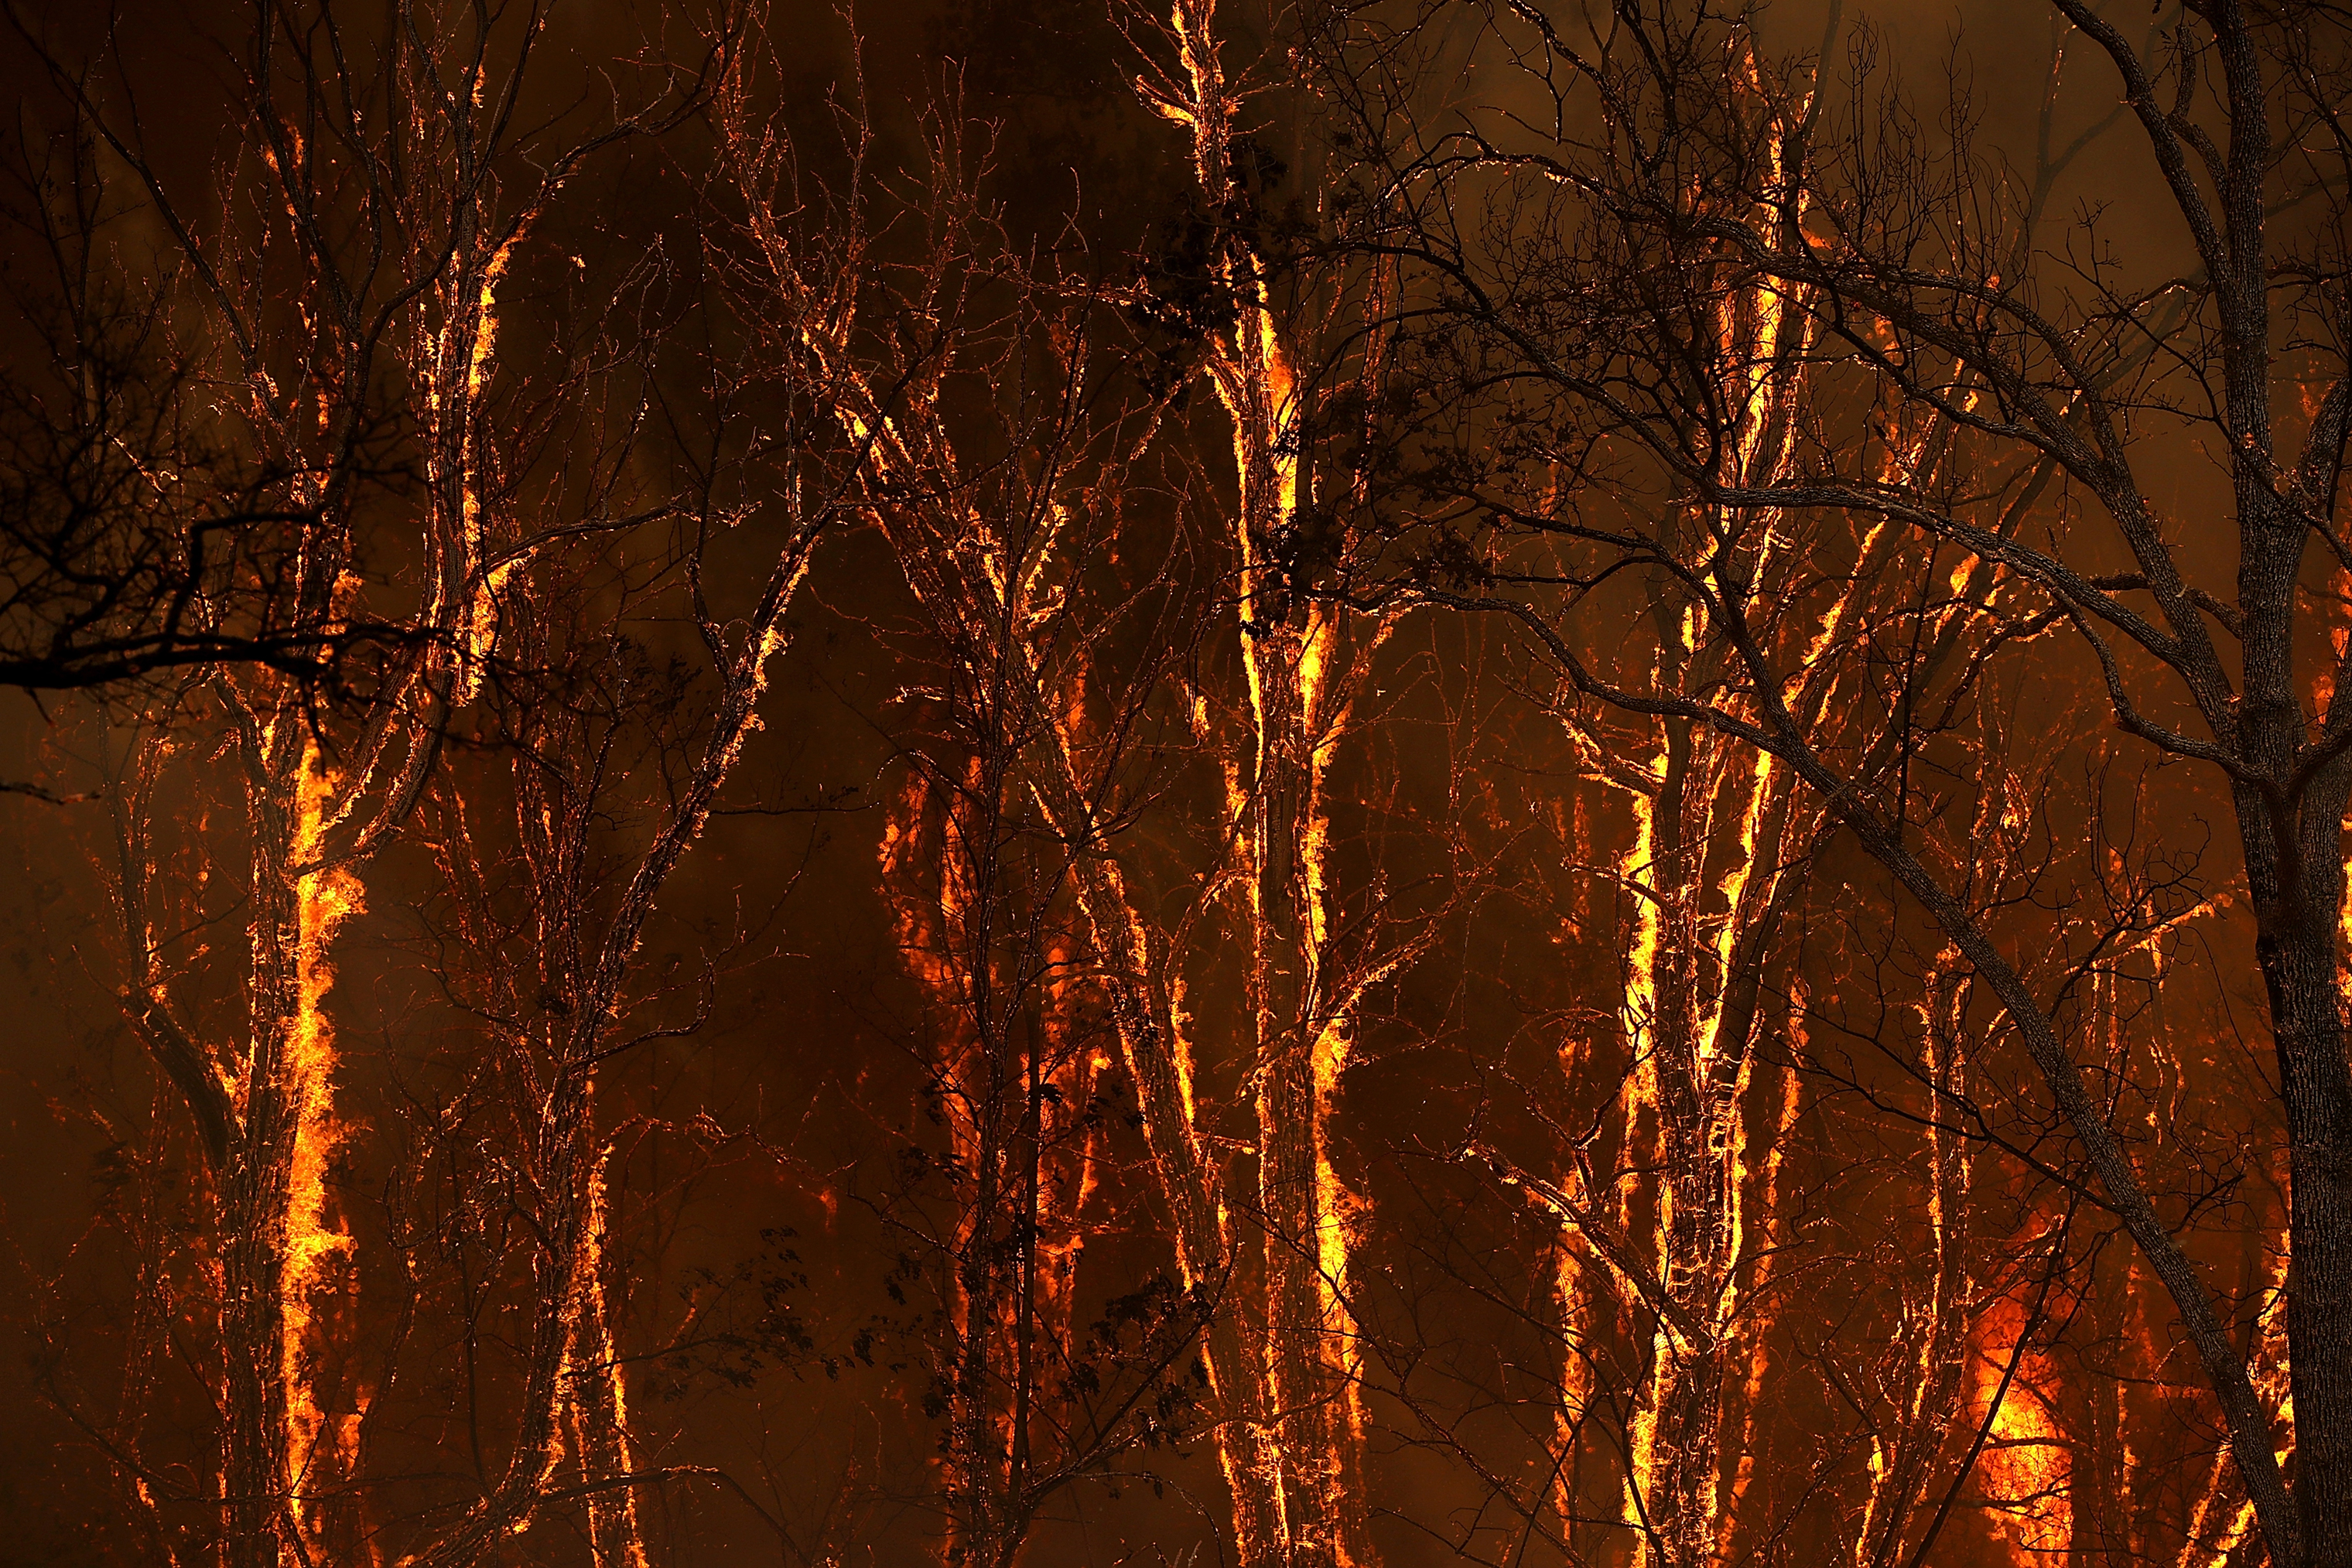 Flames from the Carr Fire burns through trees along highway 299 near Whiskeytown, Calif. on July 27.